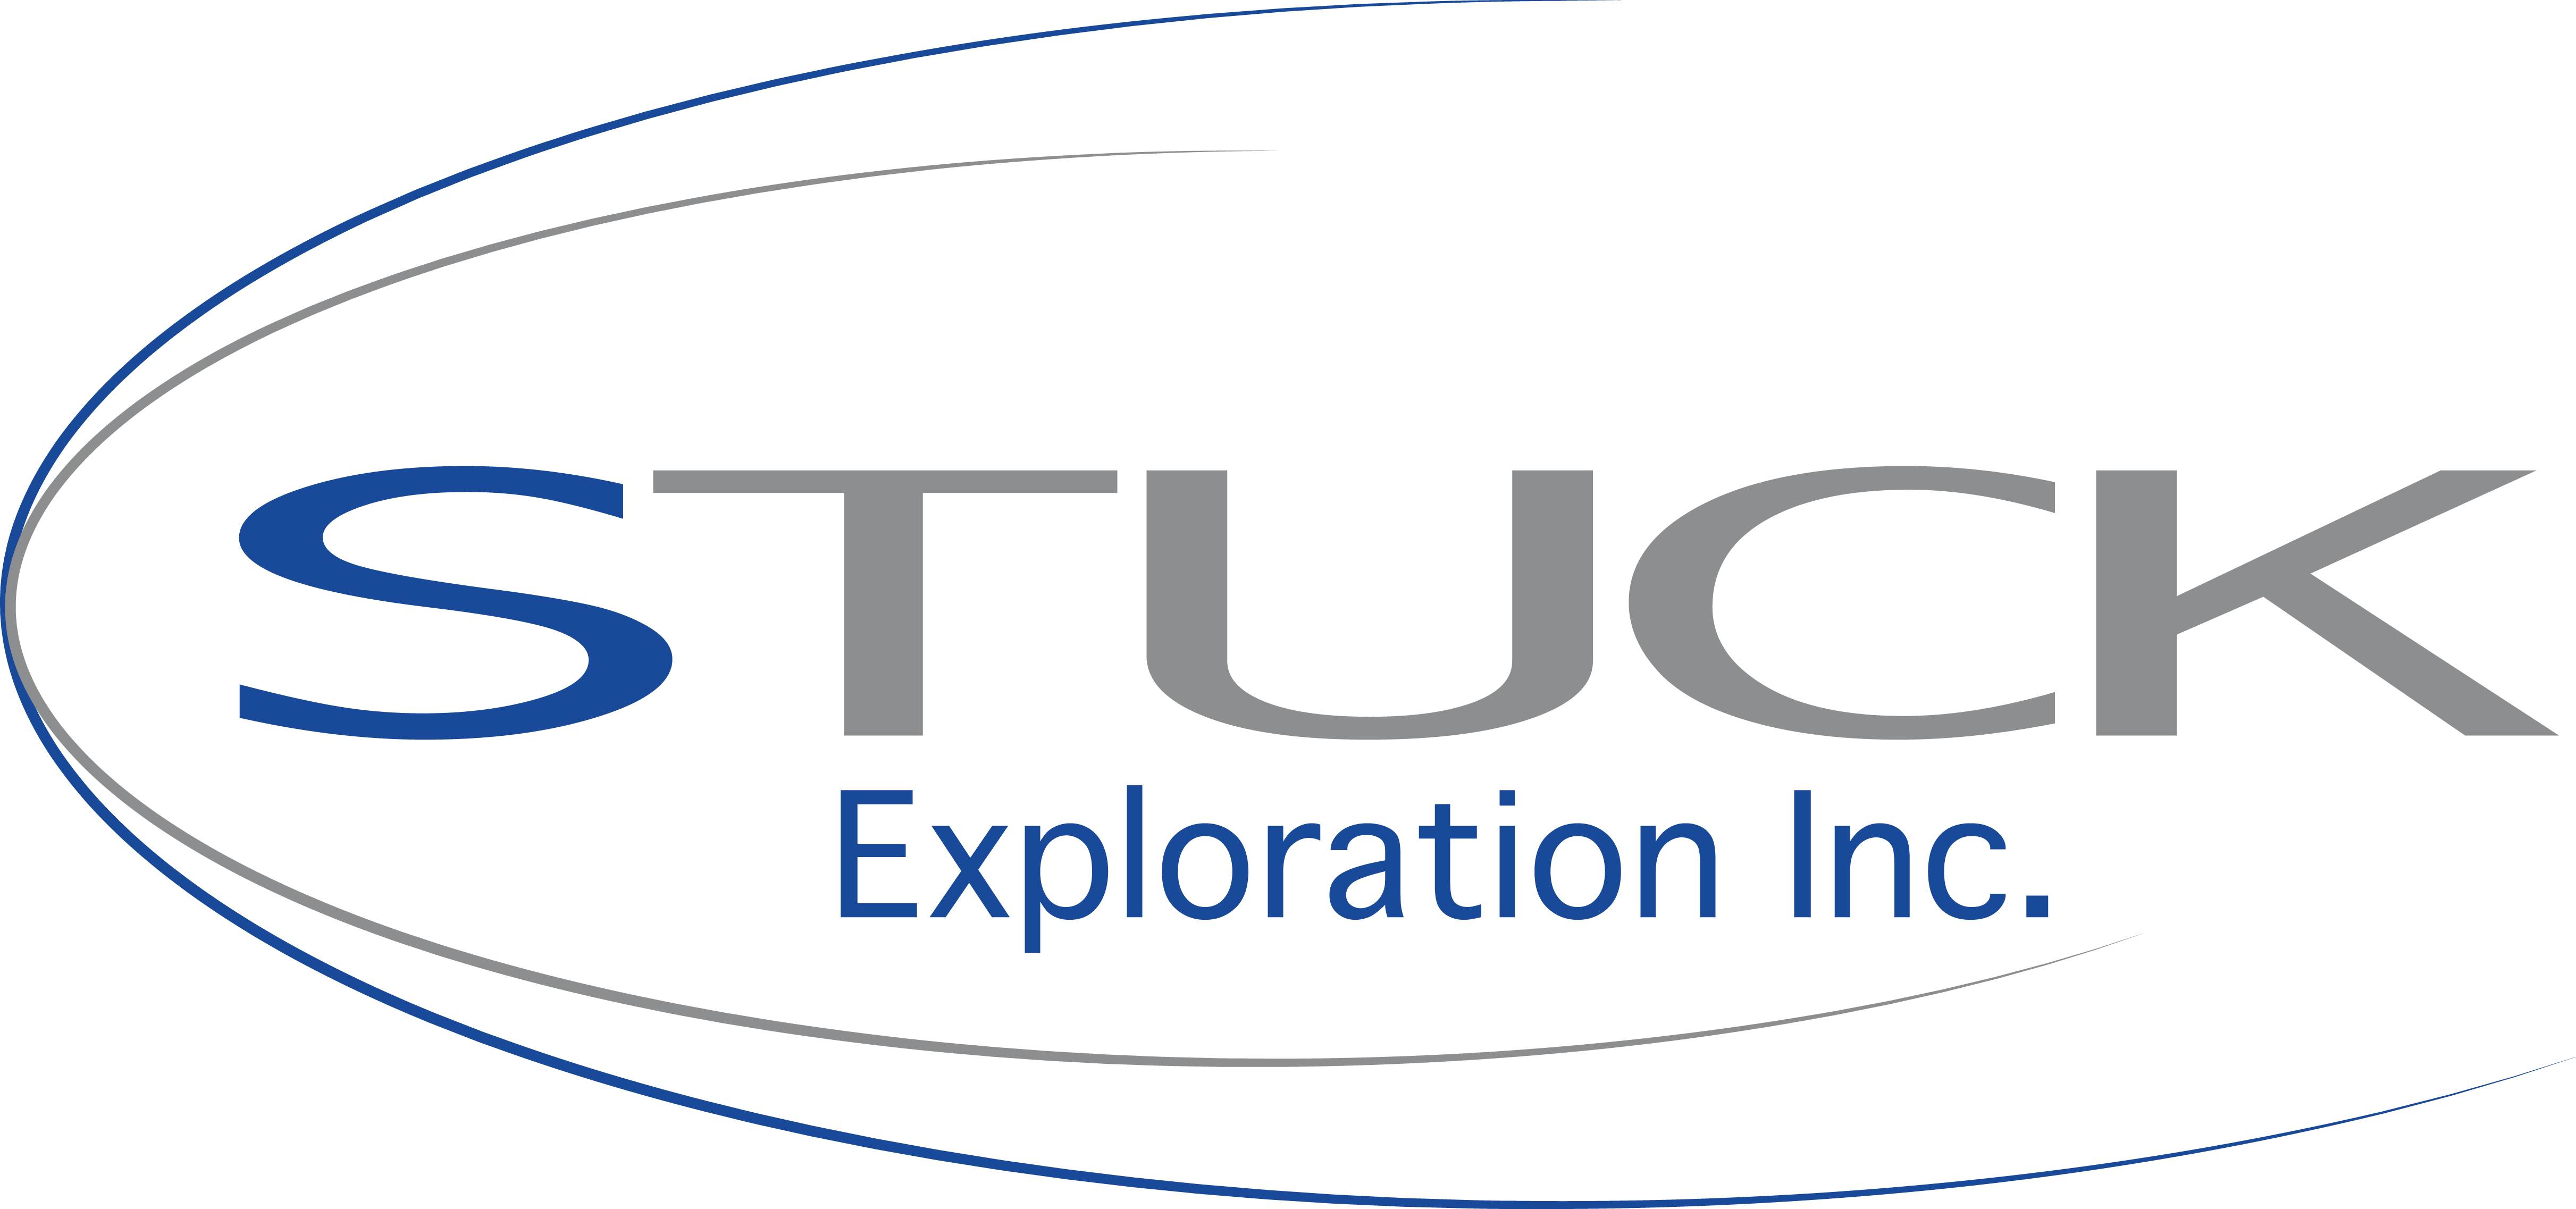 Stuck Exploration GmbH - WE EXPLORE AND WE FIND